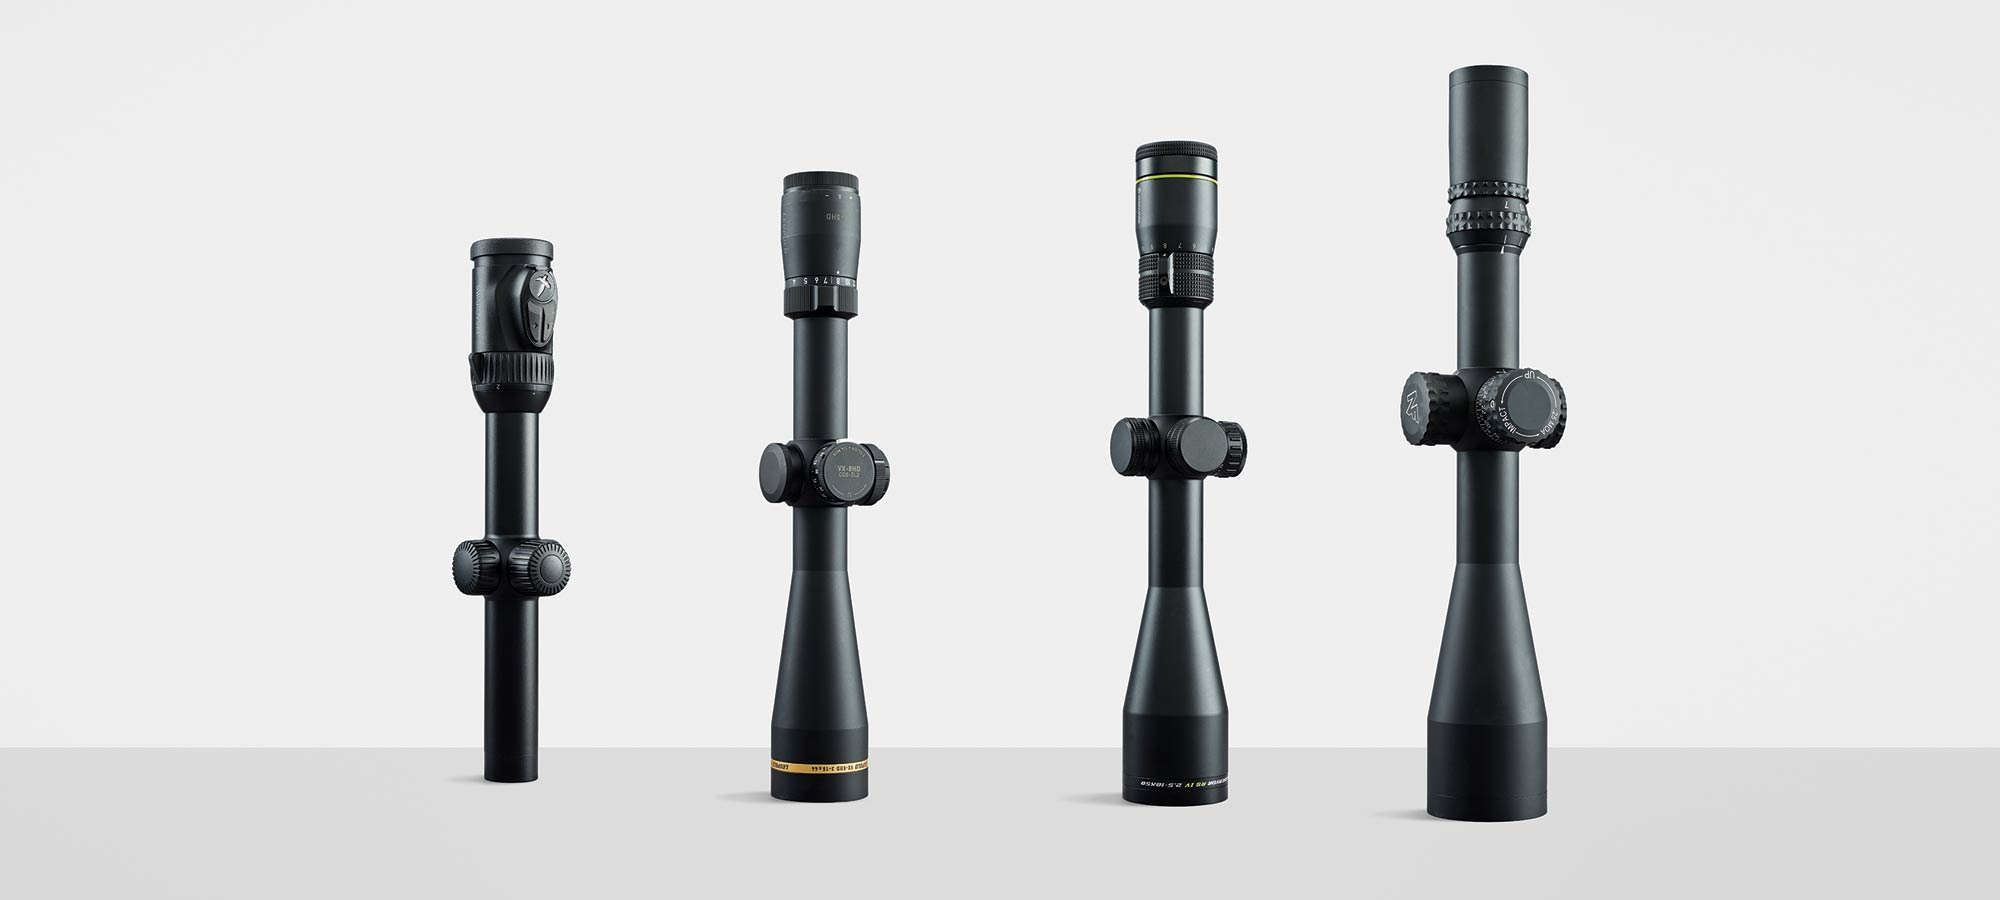 The 10 Absolute Best Rifle Scopes of 2017 | Field & Stream